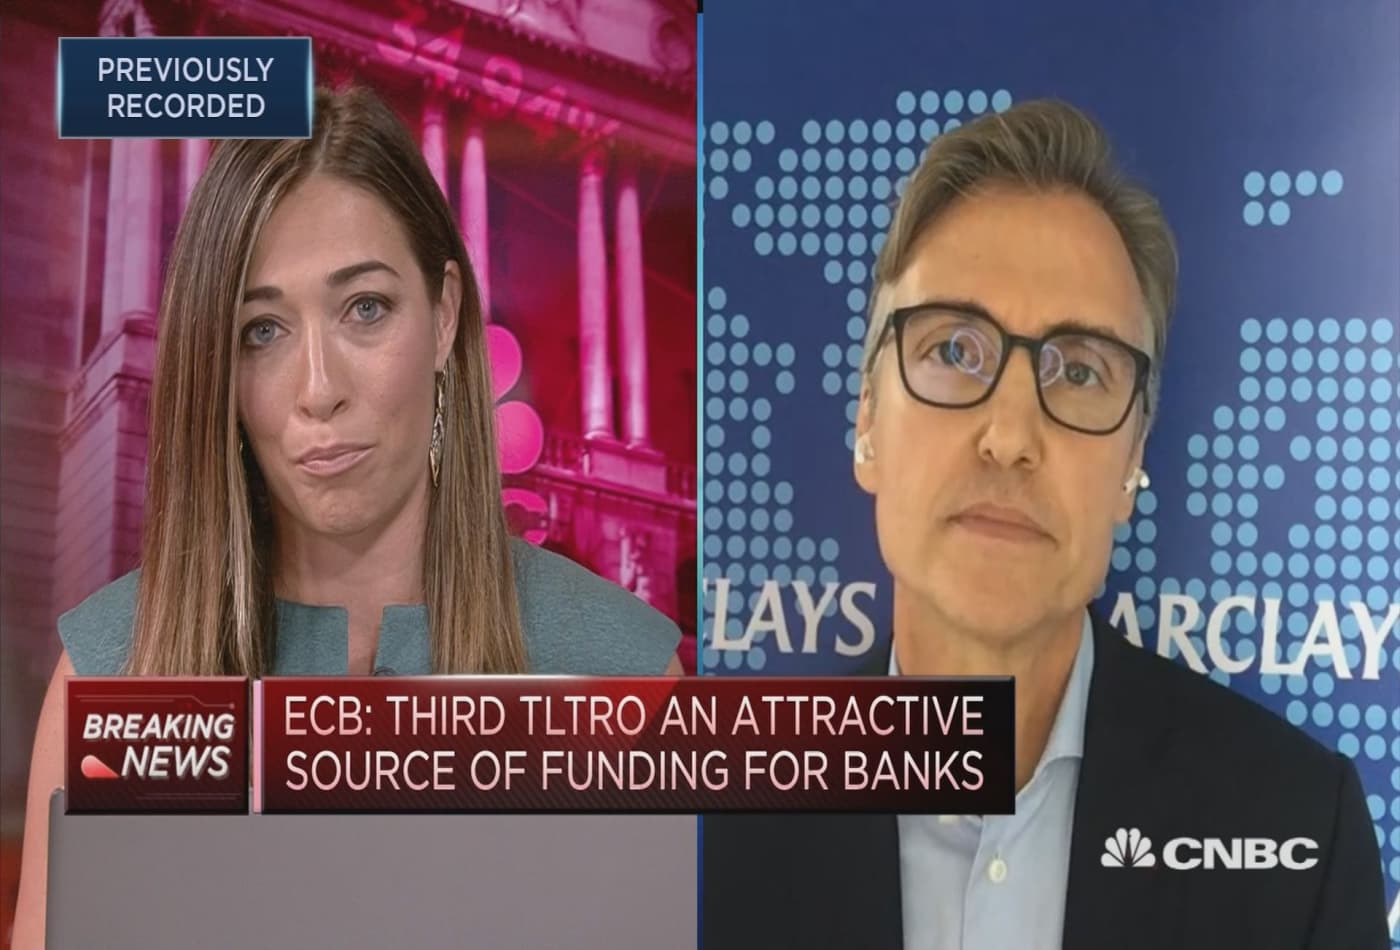 ECB reluctant to push rates deeper into negative territory: Barclays